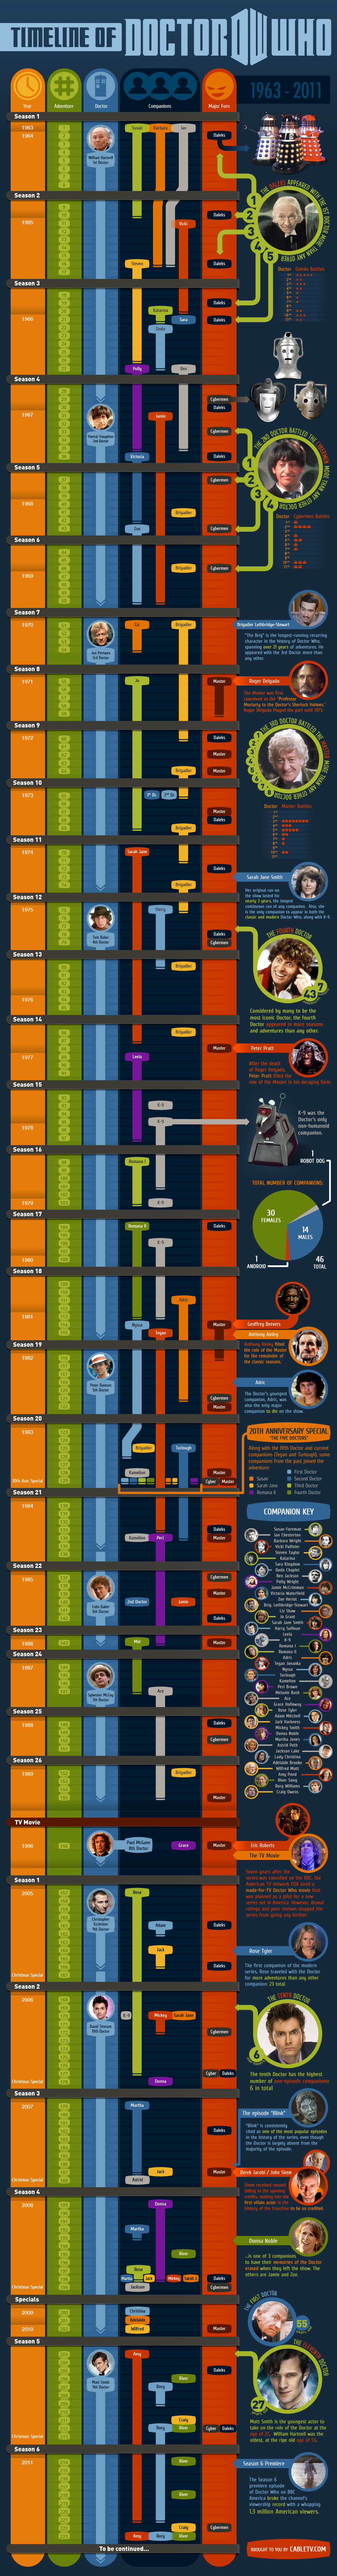 Doctor-Who-Timeline-Infographic